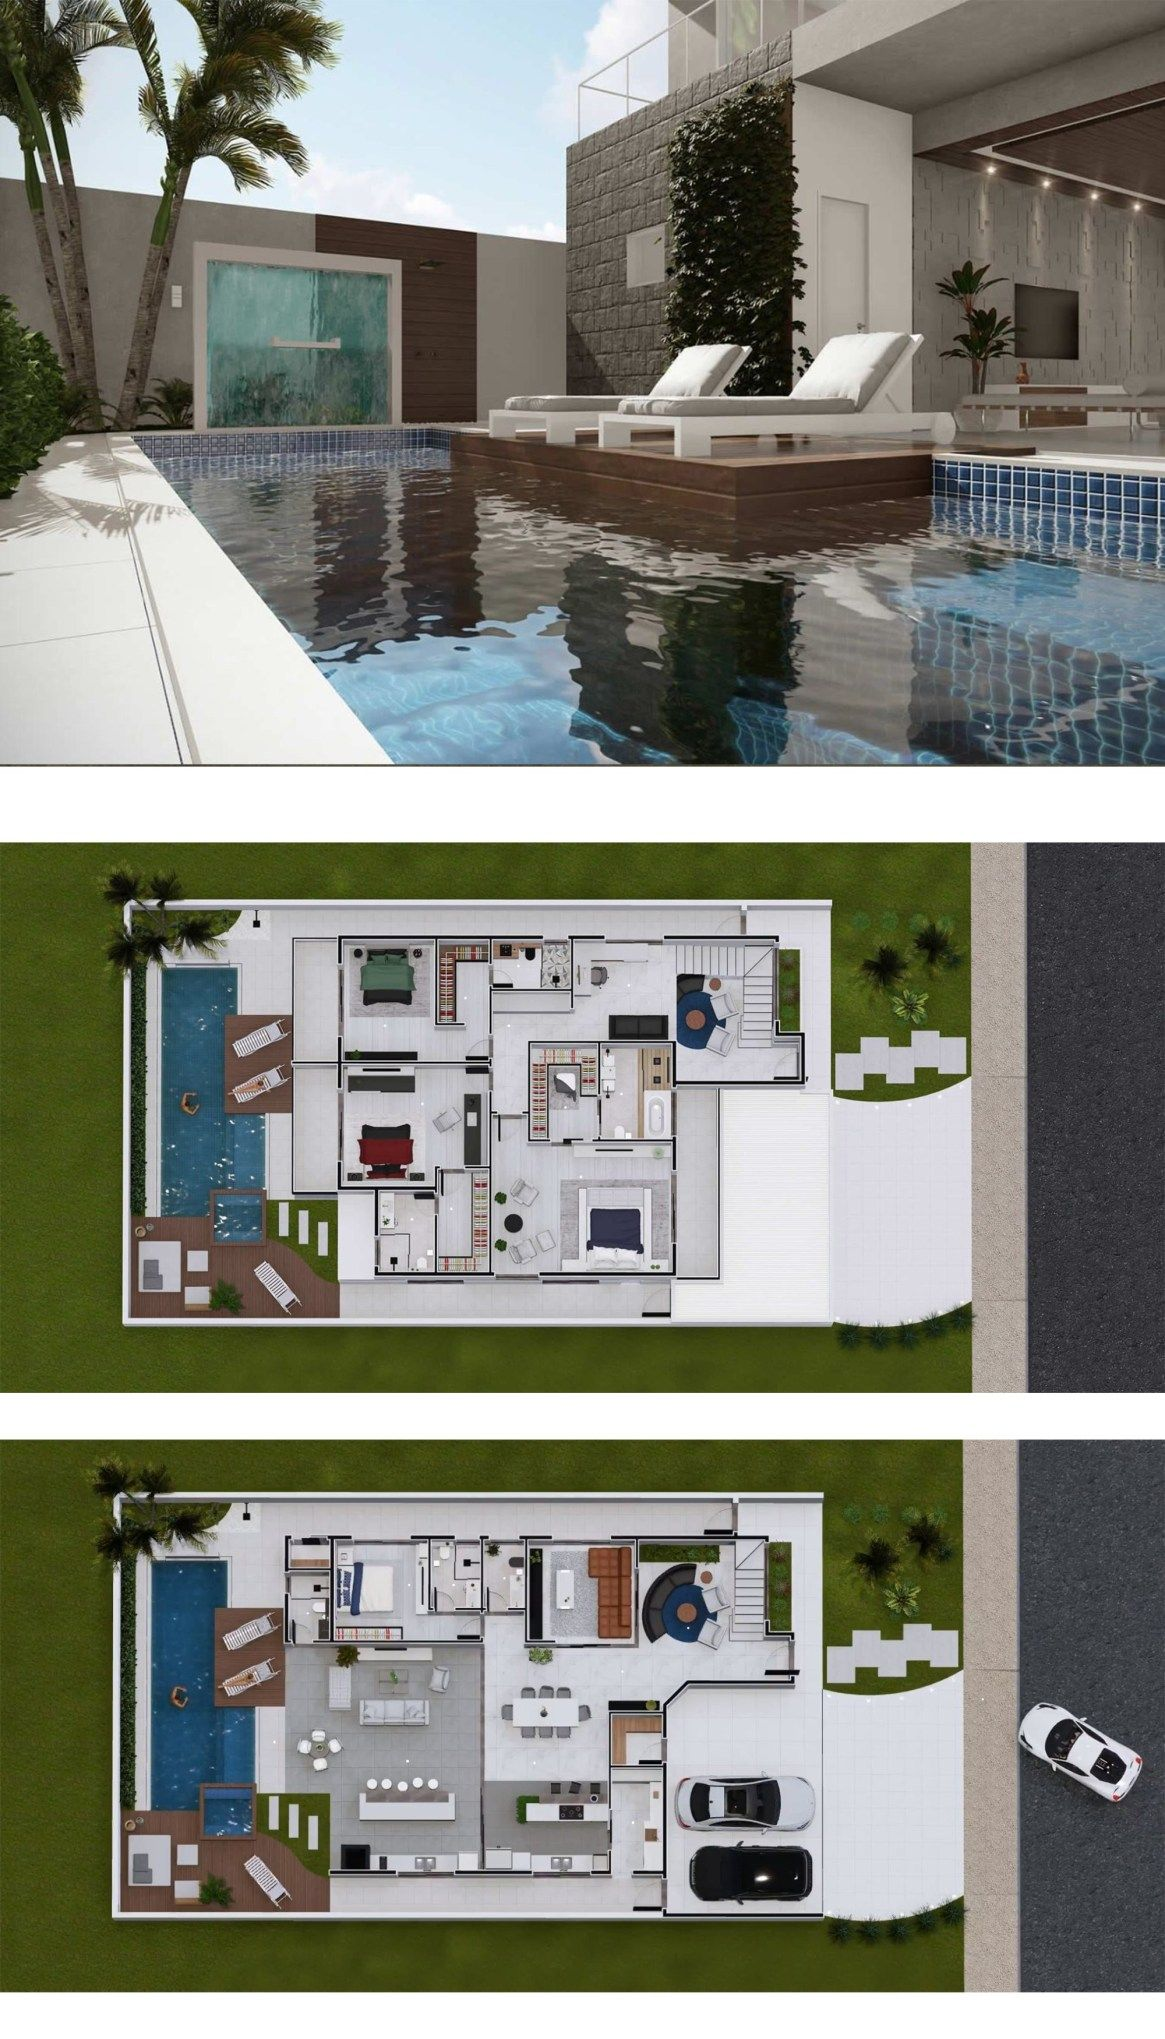 4 Bedrooms Home Design 15x30m Home Design With Plansearch Design Your Dream House Architectural House Plans House Plans Mansion